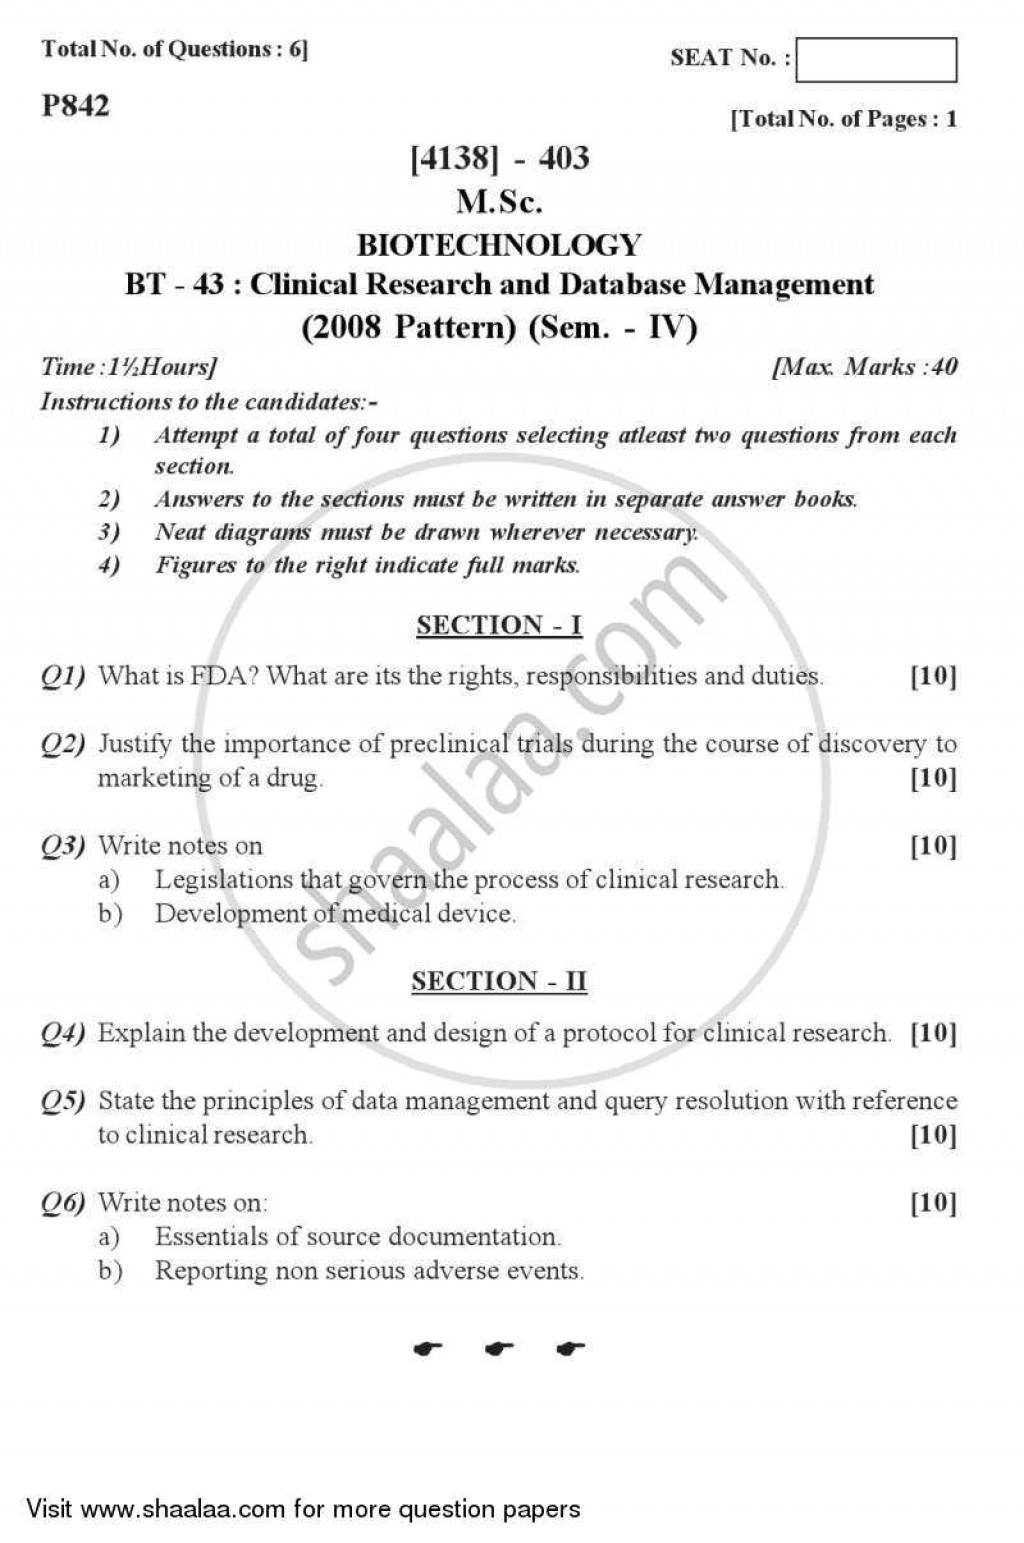 023 Research Paper Database University Of Pune Master Msc Clinical Management Biotech Semester 2012 25b9c0e3f87cb432992c22355b1608732 Sensational Academic Used By Japanese National Organizations Papers On Distributed Security Medical Large